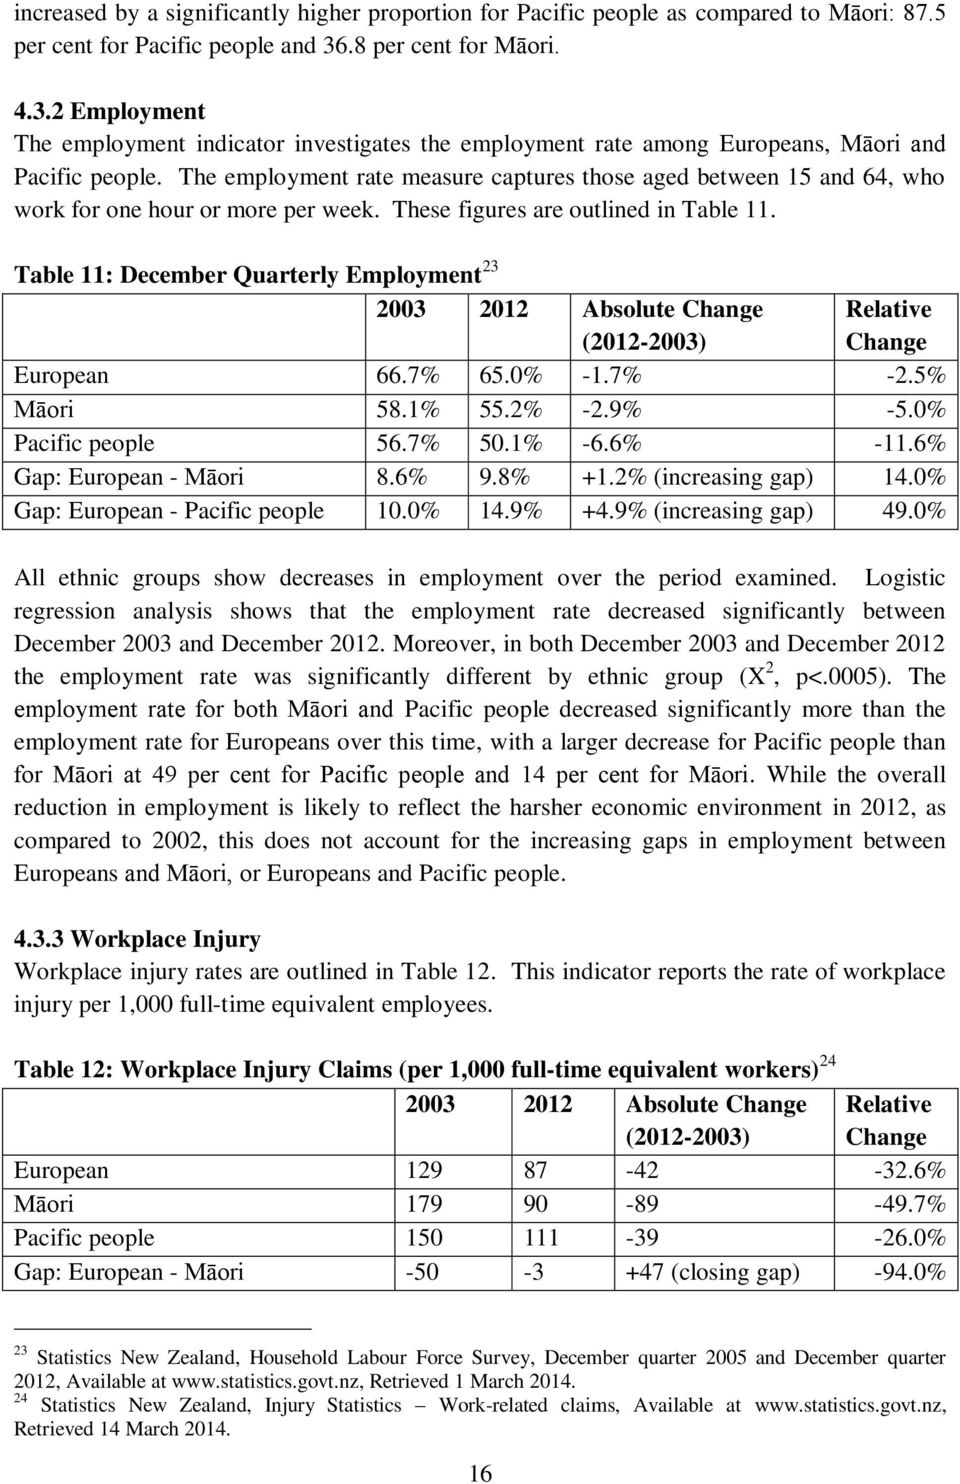 The employment rate measure captures those aged between 15 and 64, who work for one hour or more per week. These figures are outlined in Table 11.